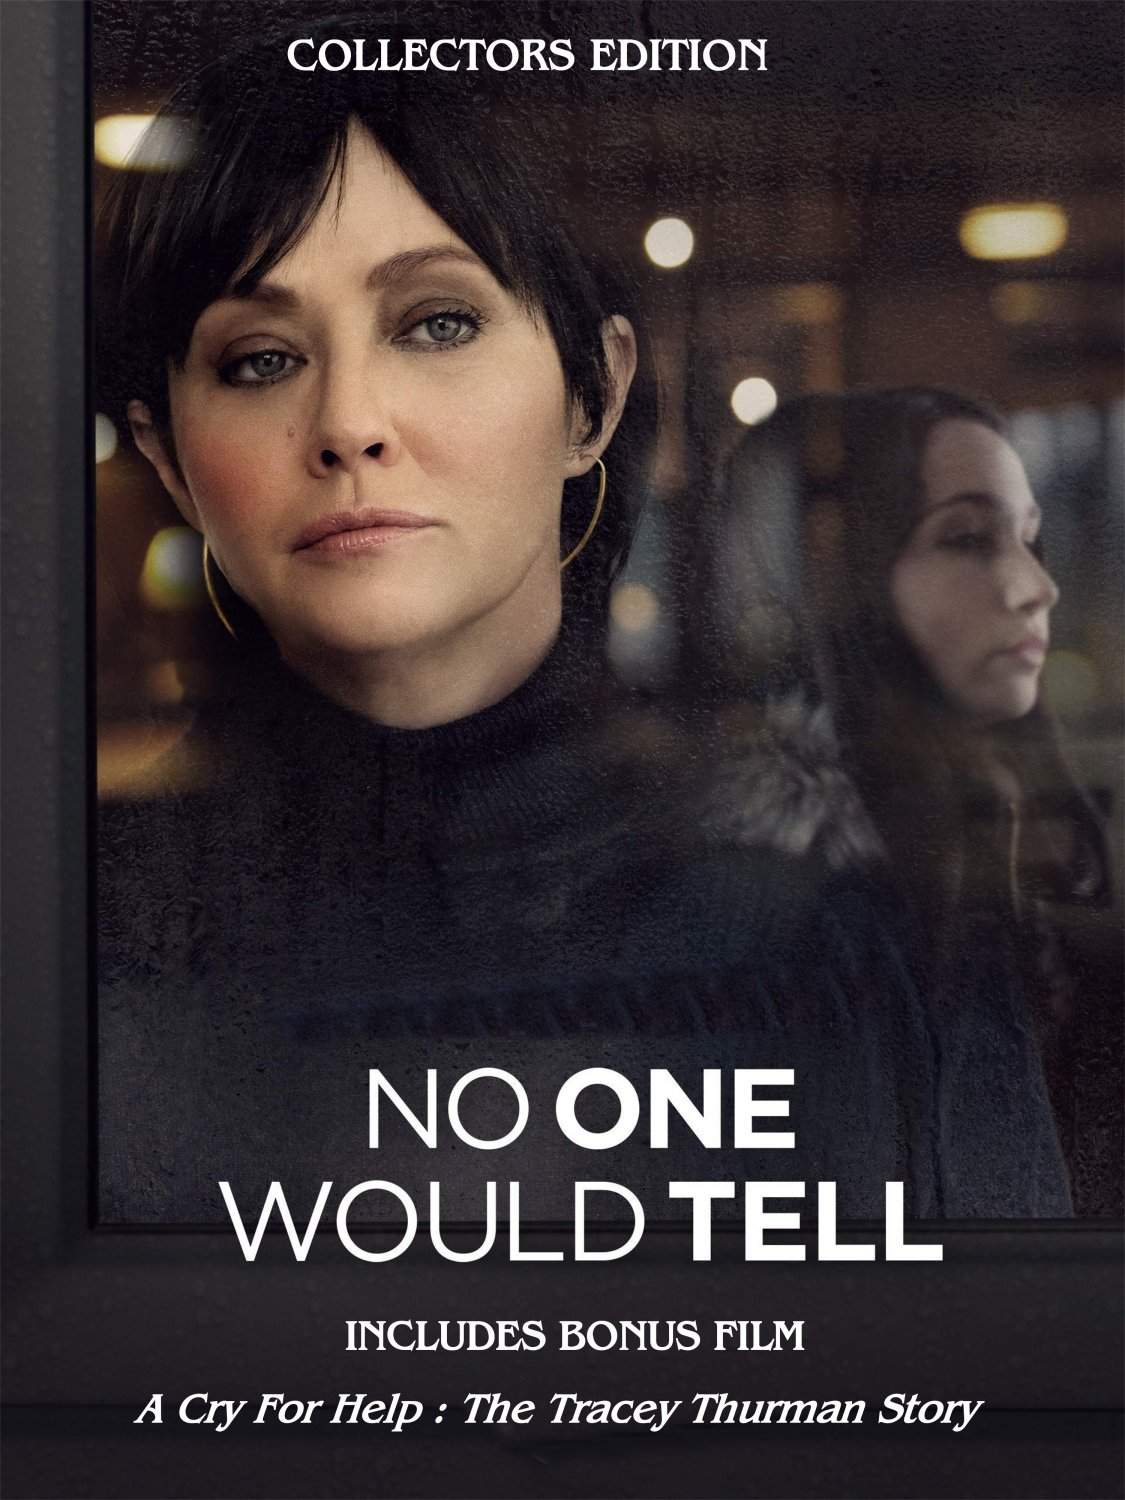 """No One Would Tell On DVD (1996) Domestic Violence - Includes Bonus Film """"A Cry For Help"""""""